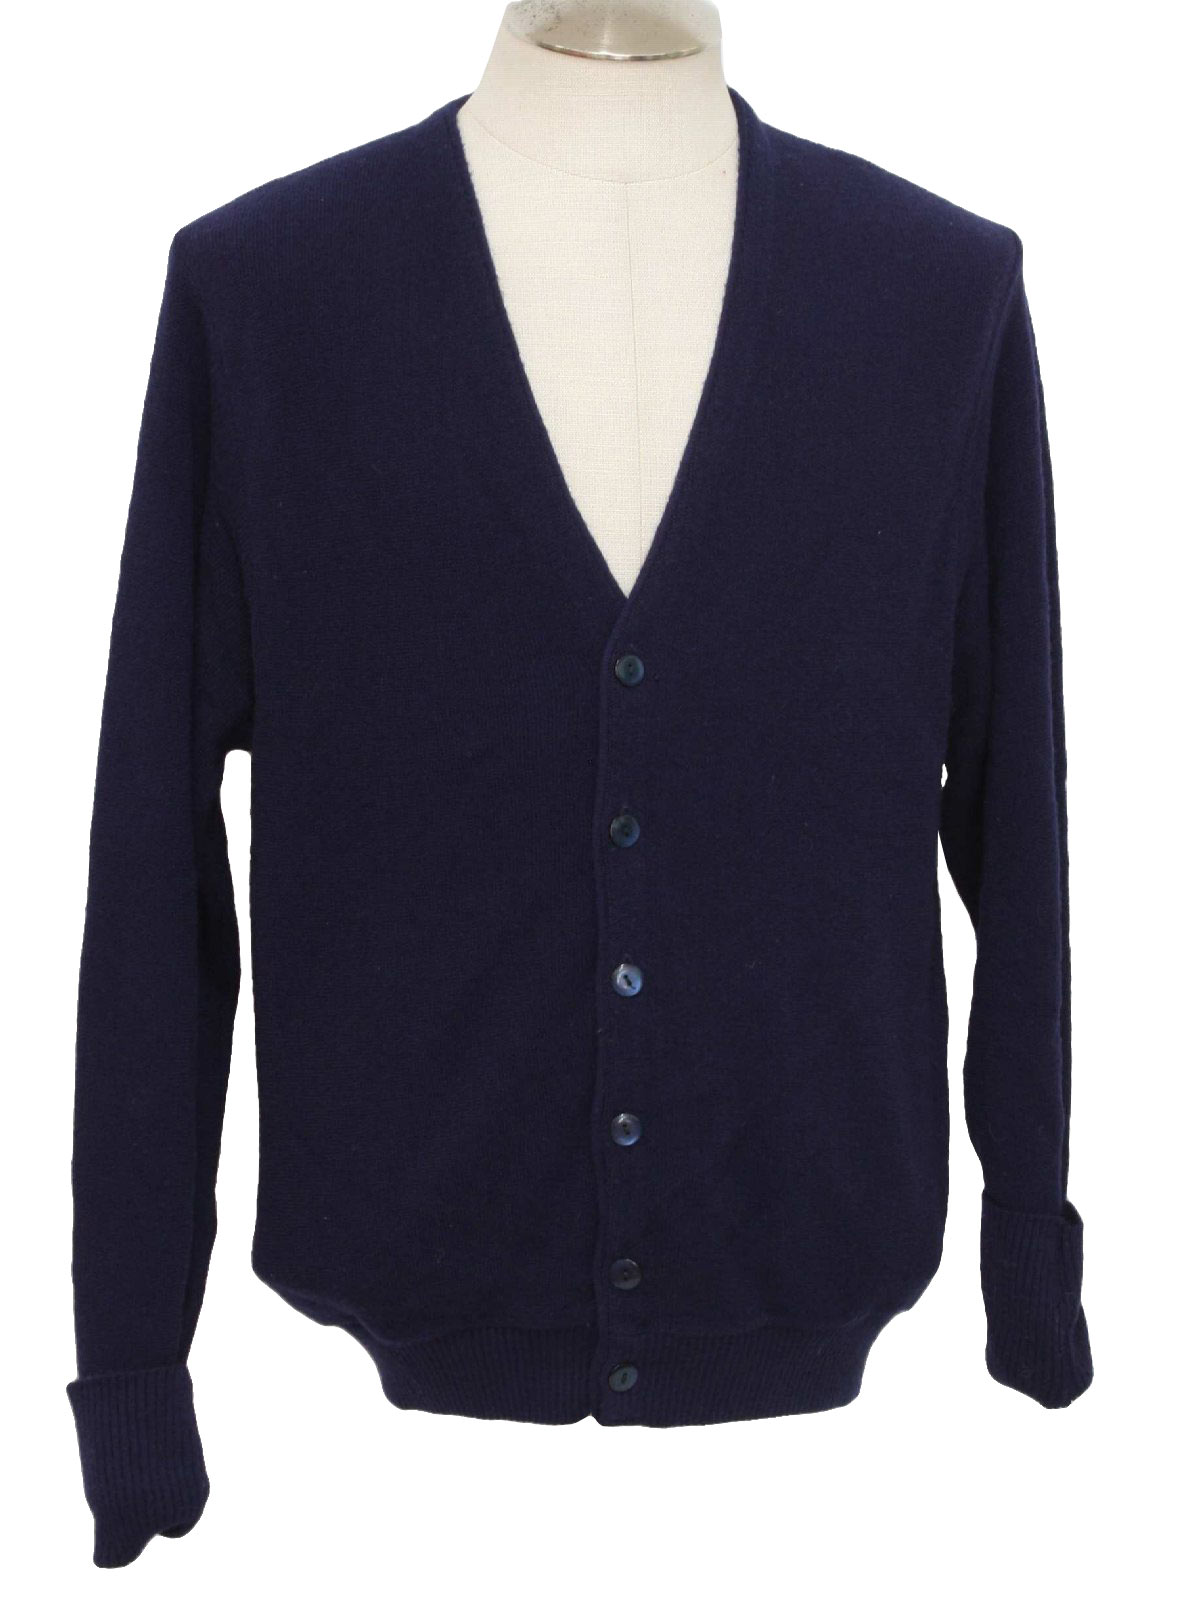 Womens Navy Blue Cardigan Australia - Cardigan With Buttons